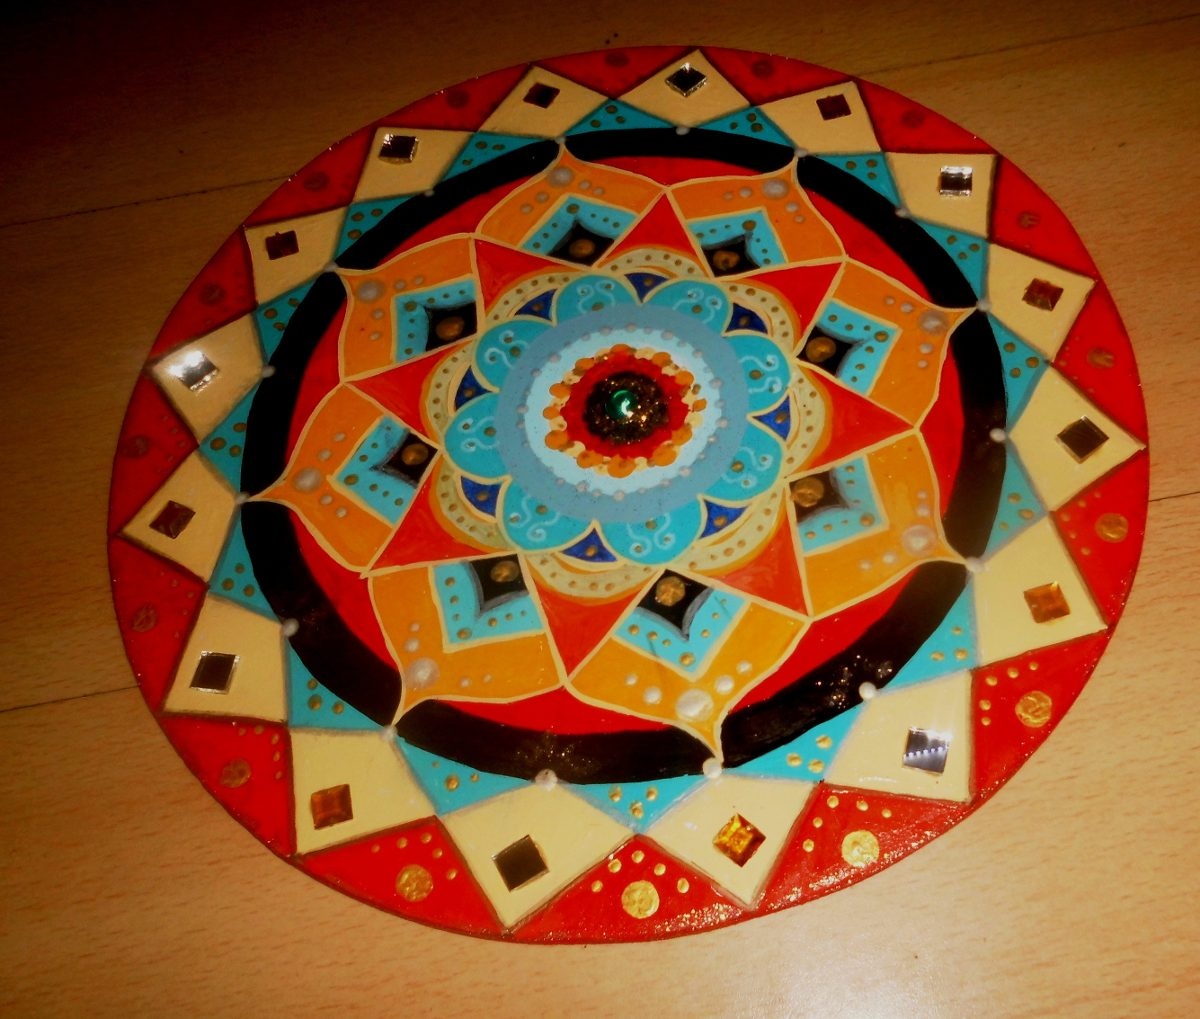 Cuadros De Piedras 1000 43 Images About Mandalas En Piedra On Pinterest